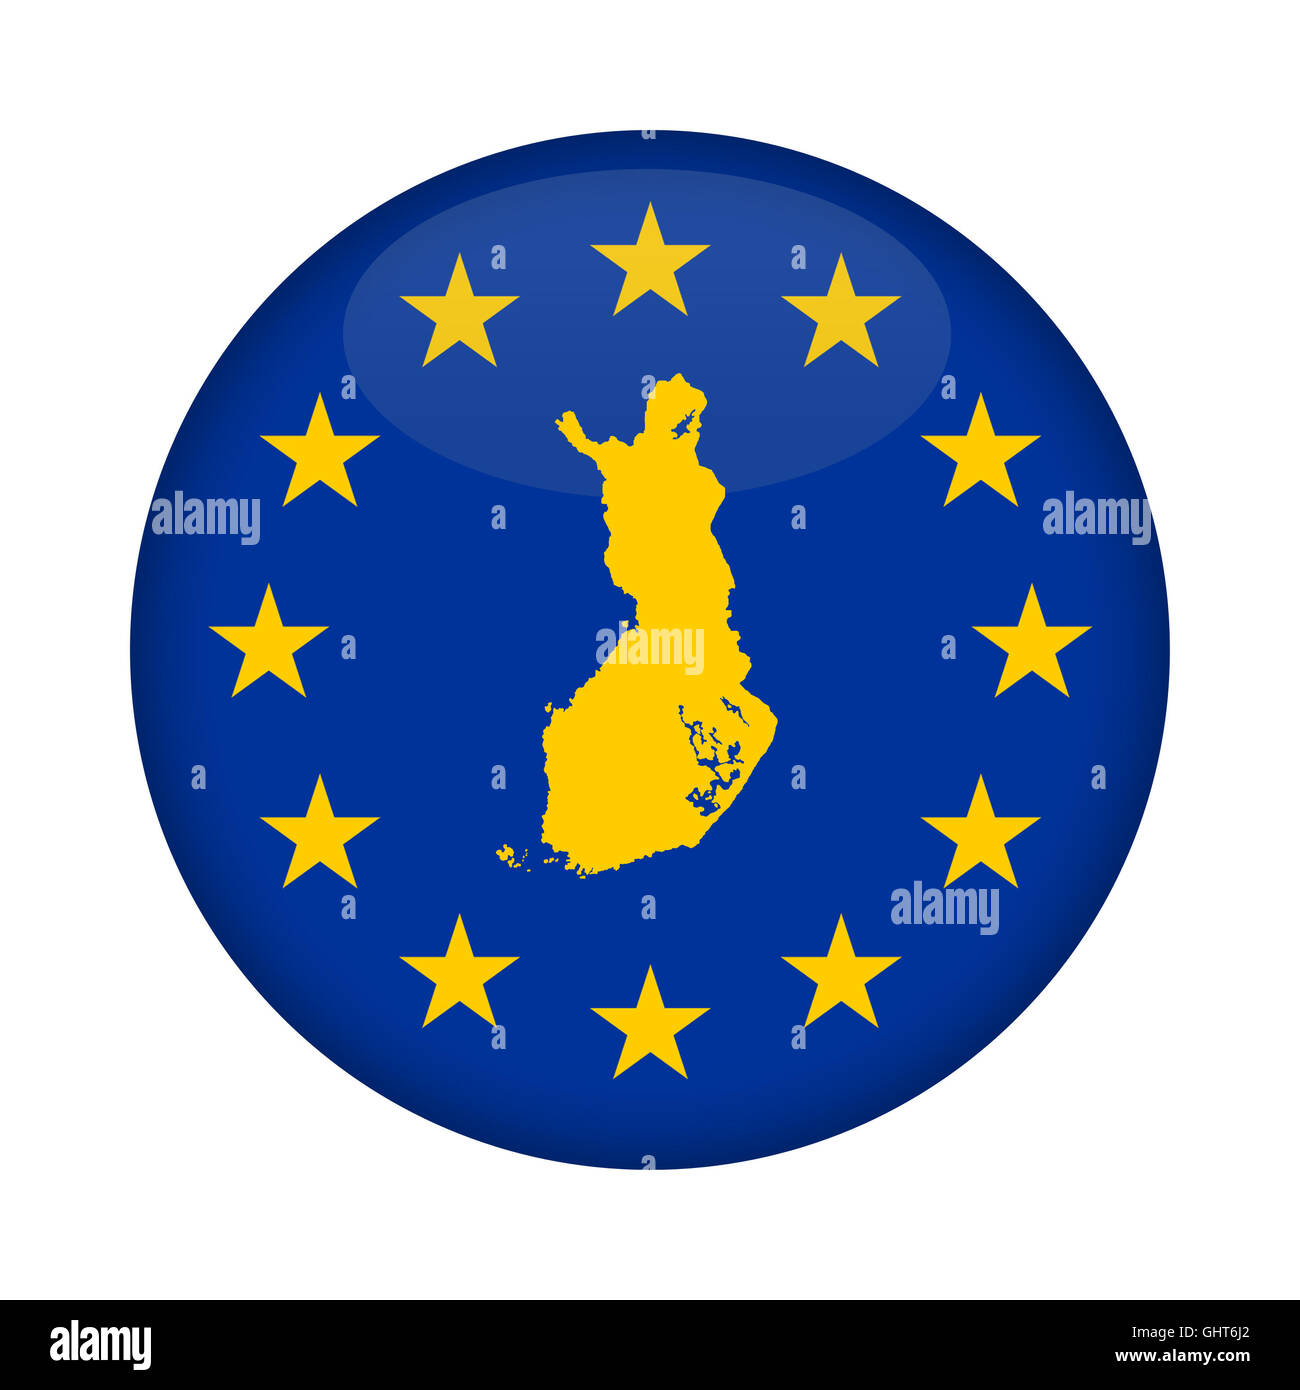 Finland map on a European Union flag button isolated on a white background. Stock Photo